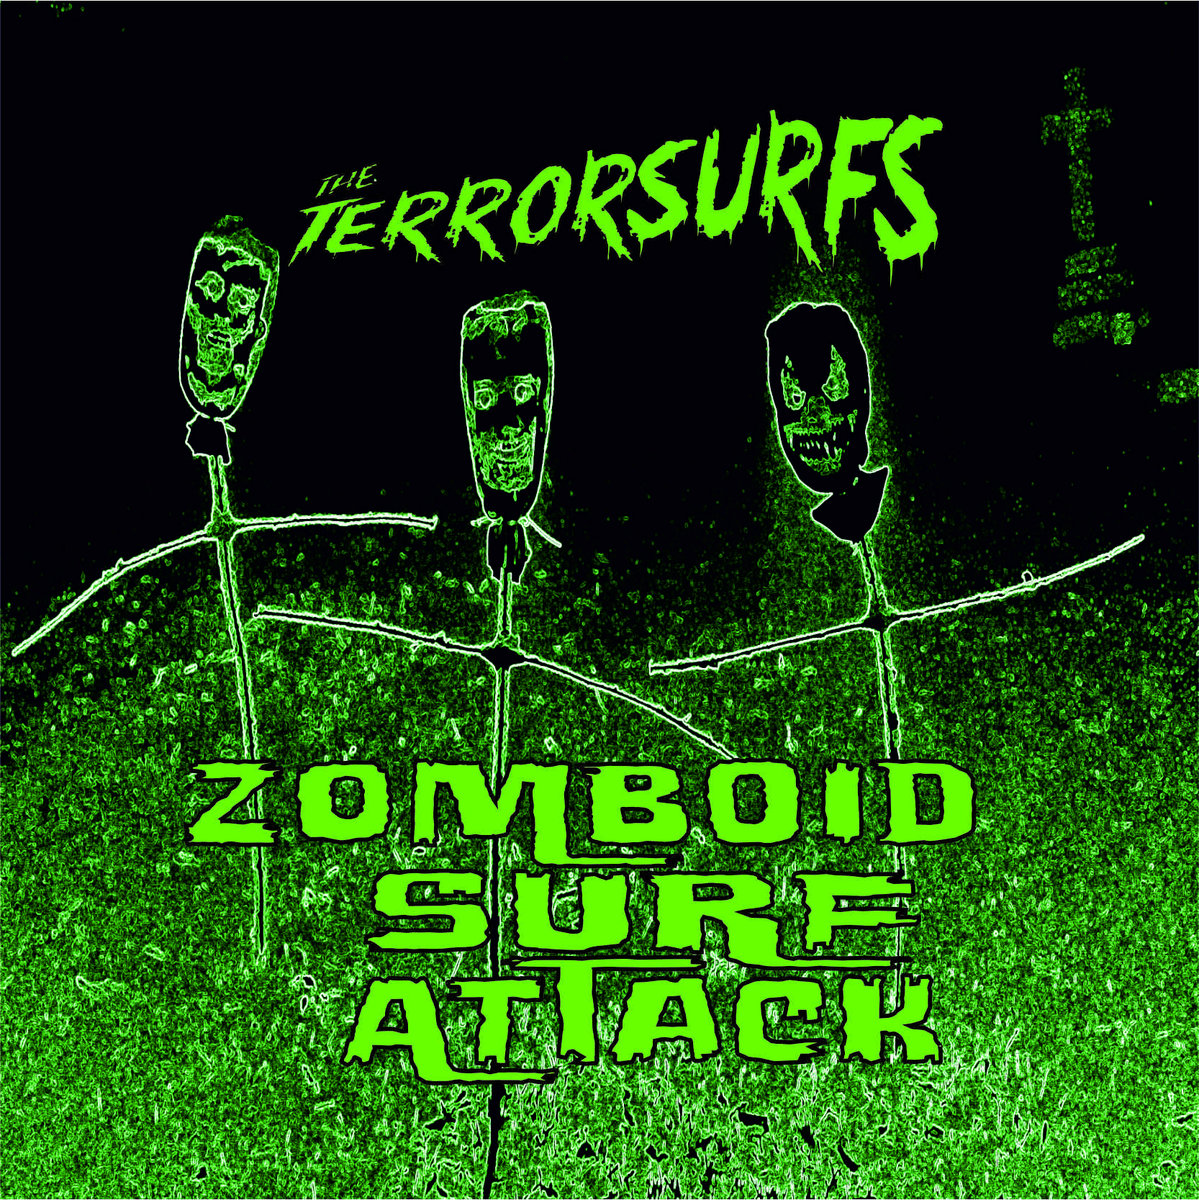 SRW013 The Terrorsurfs - Zomboid Surf Attack